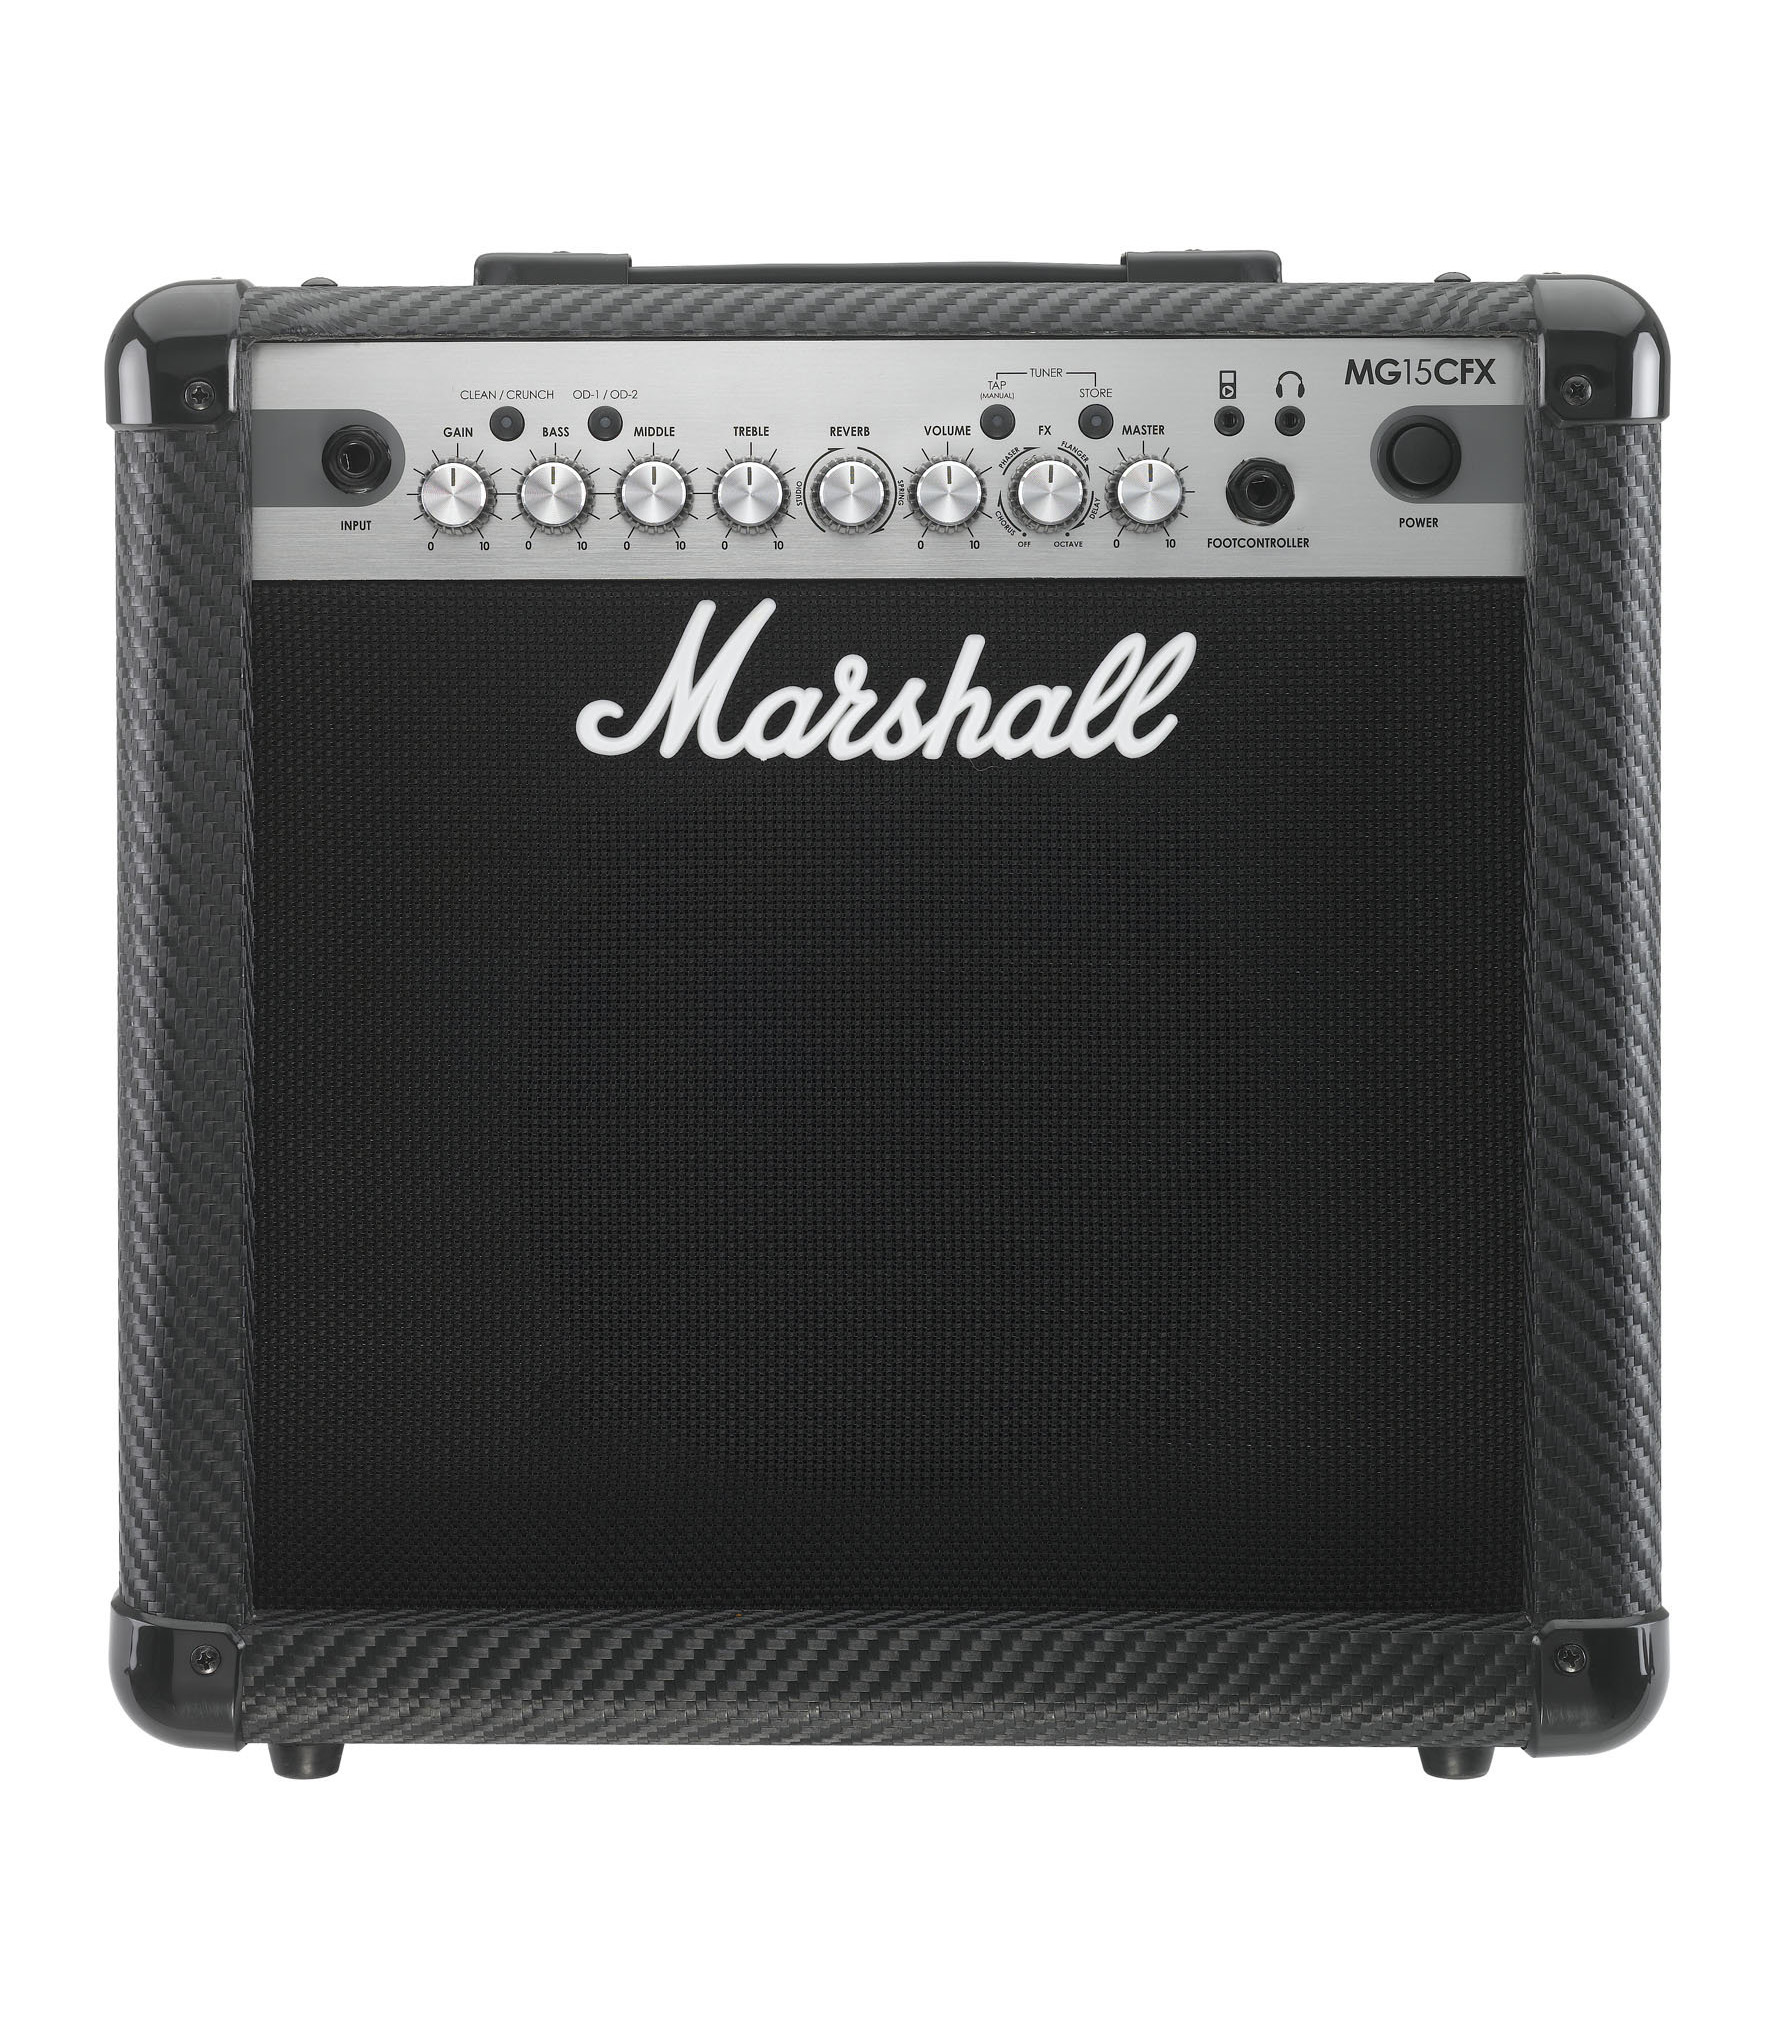 buy marshall mg15cfx solid state guitar amp 2 channe